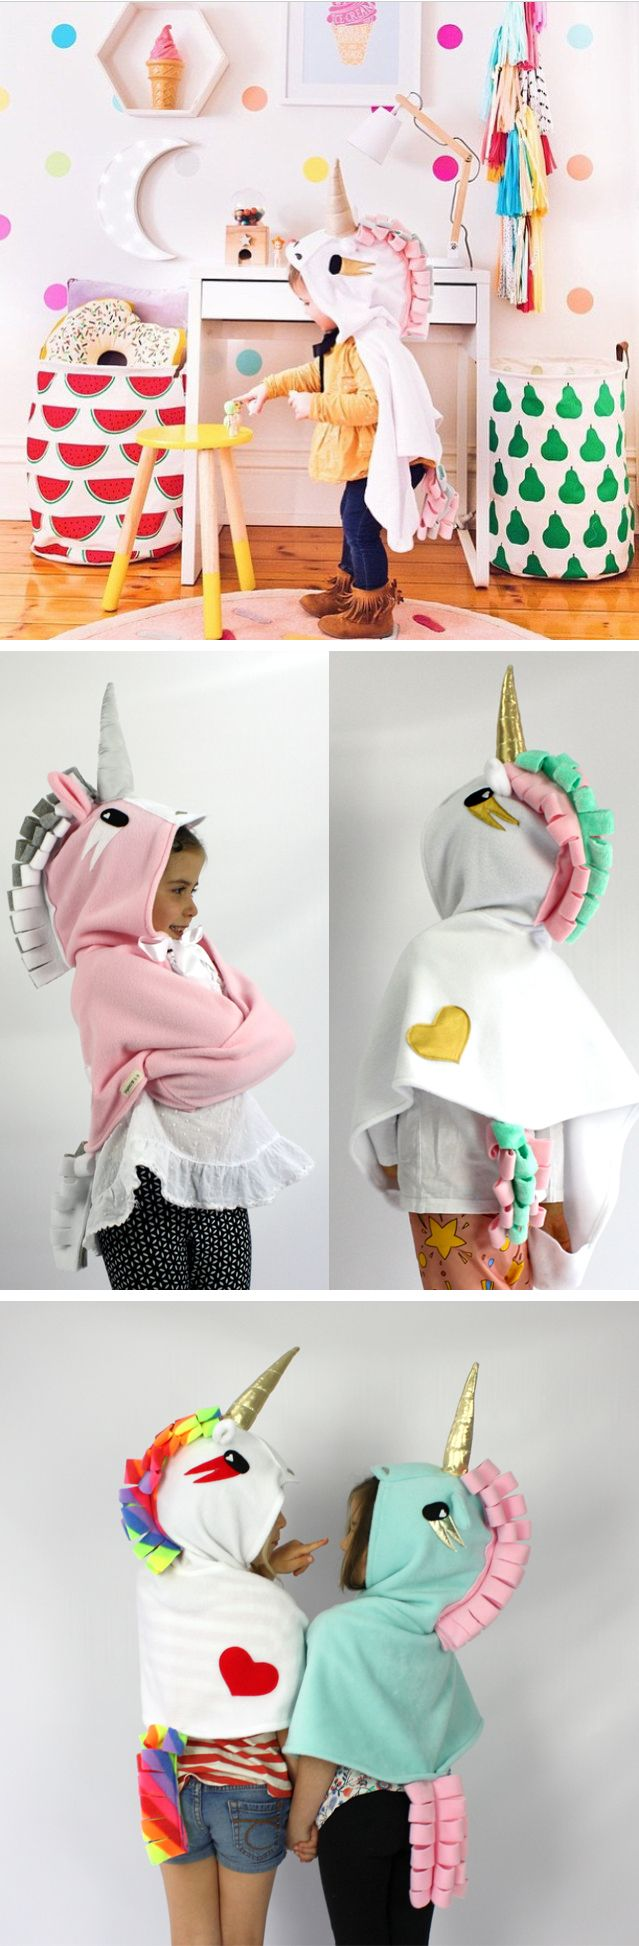 Unicorn Costume - Children's Handmade dress-up for imaginative play